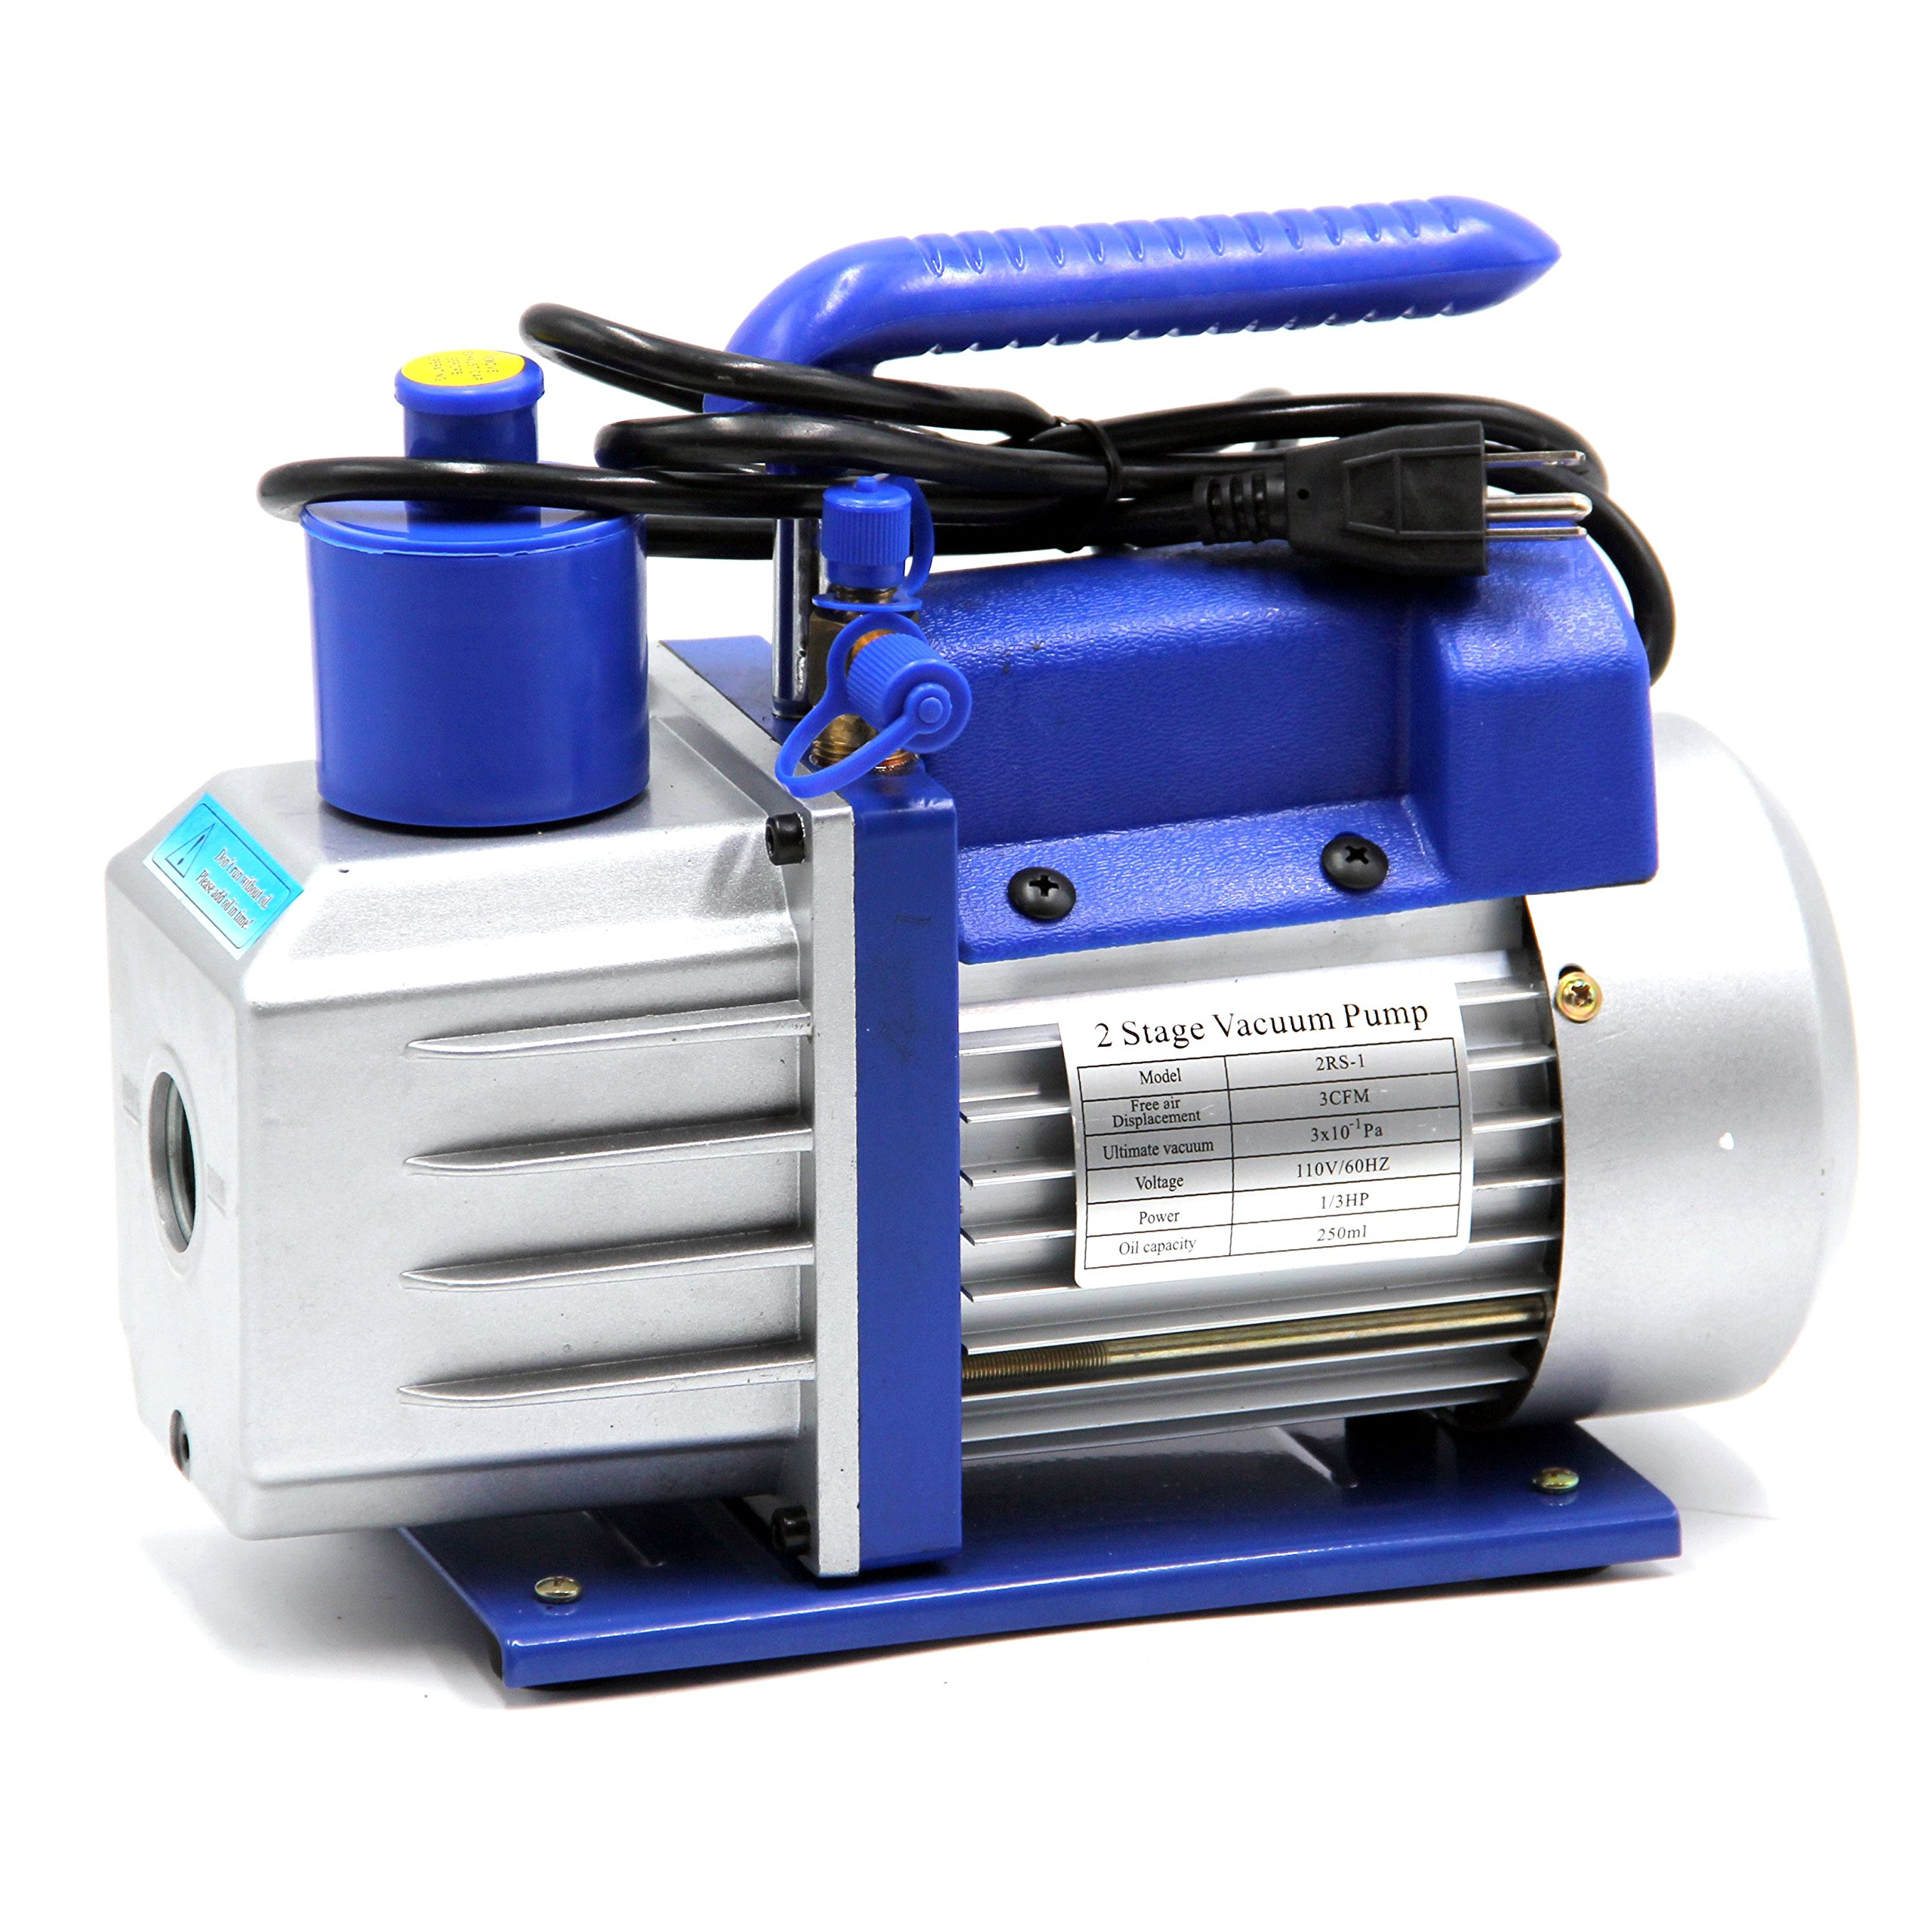 HFS (R Vacuum Pump Double Stage 3CFM ; 110V/60HZ ; Inlet: SAE 1/4''-3/8'' SAE; Ultimate Vacuum: 310-1 PA